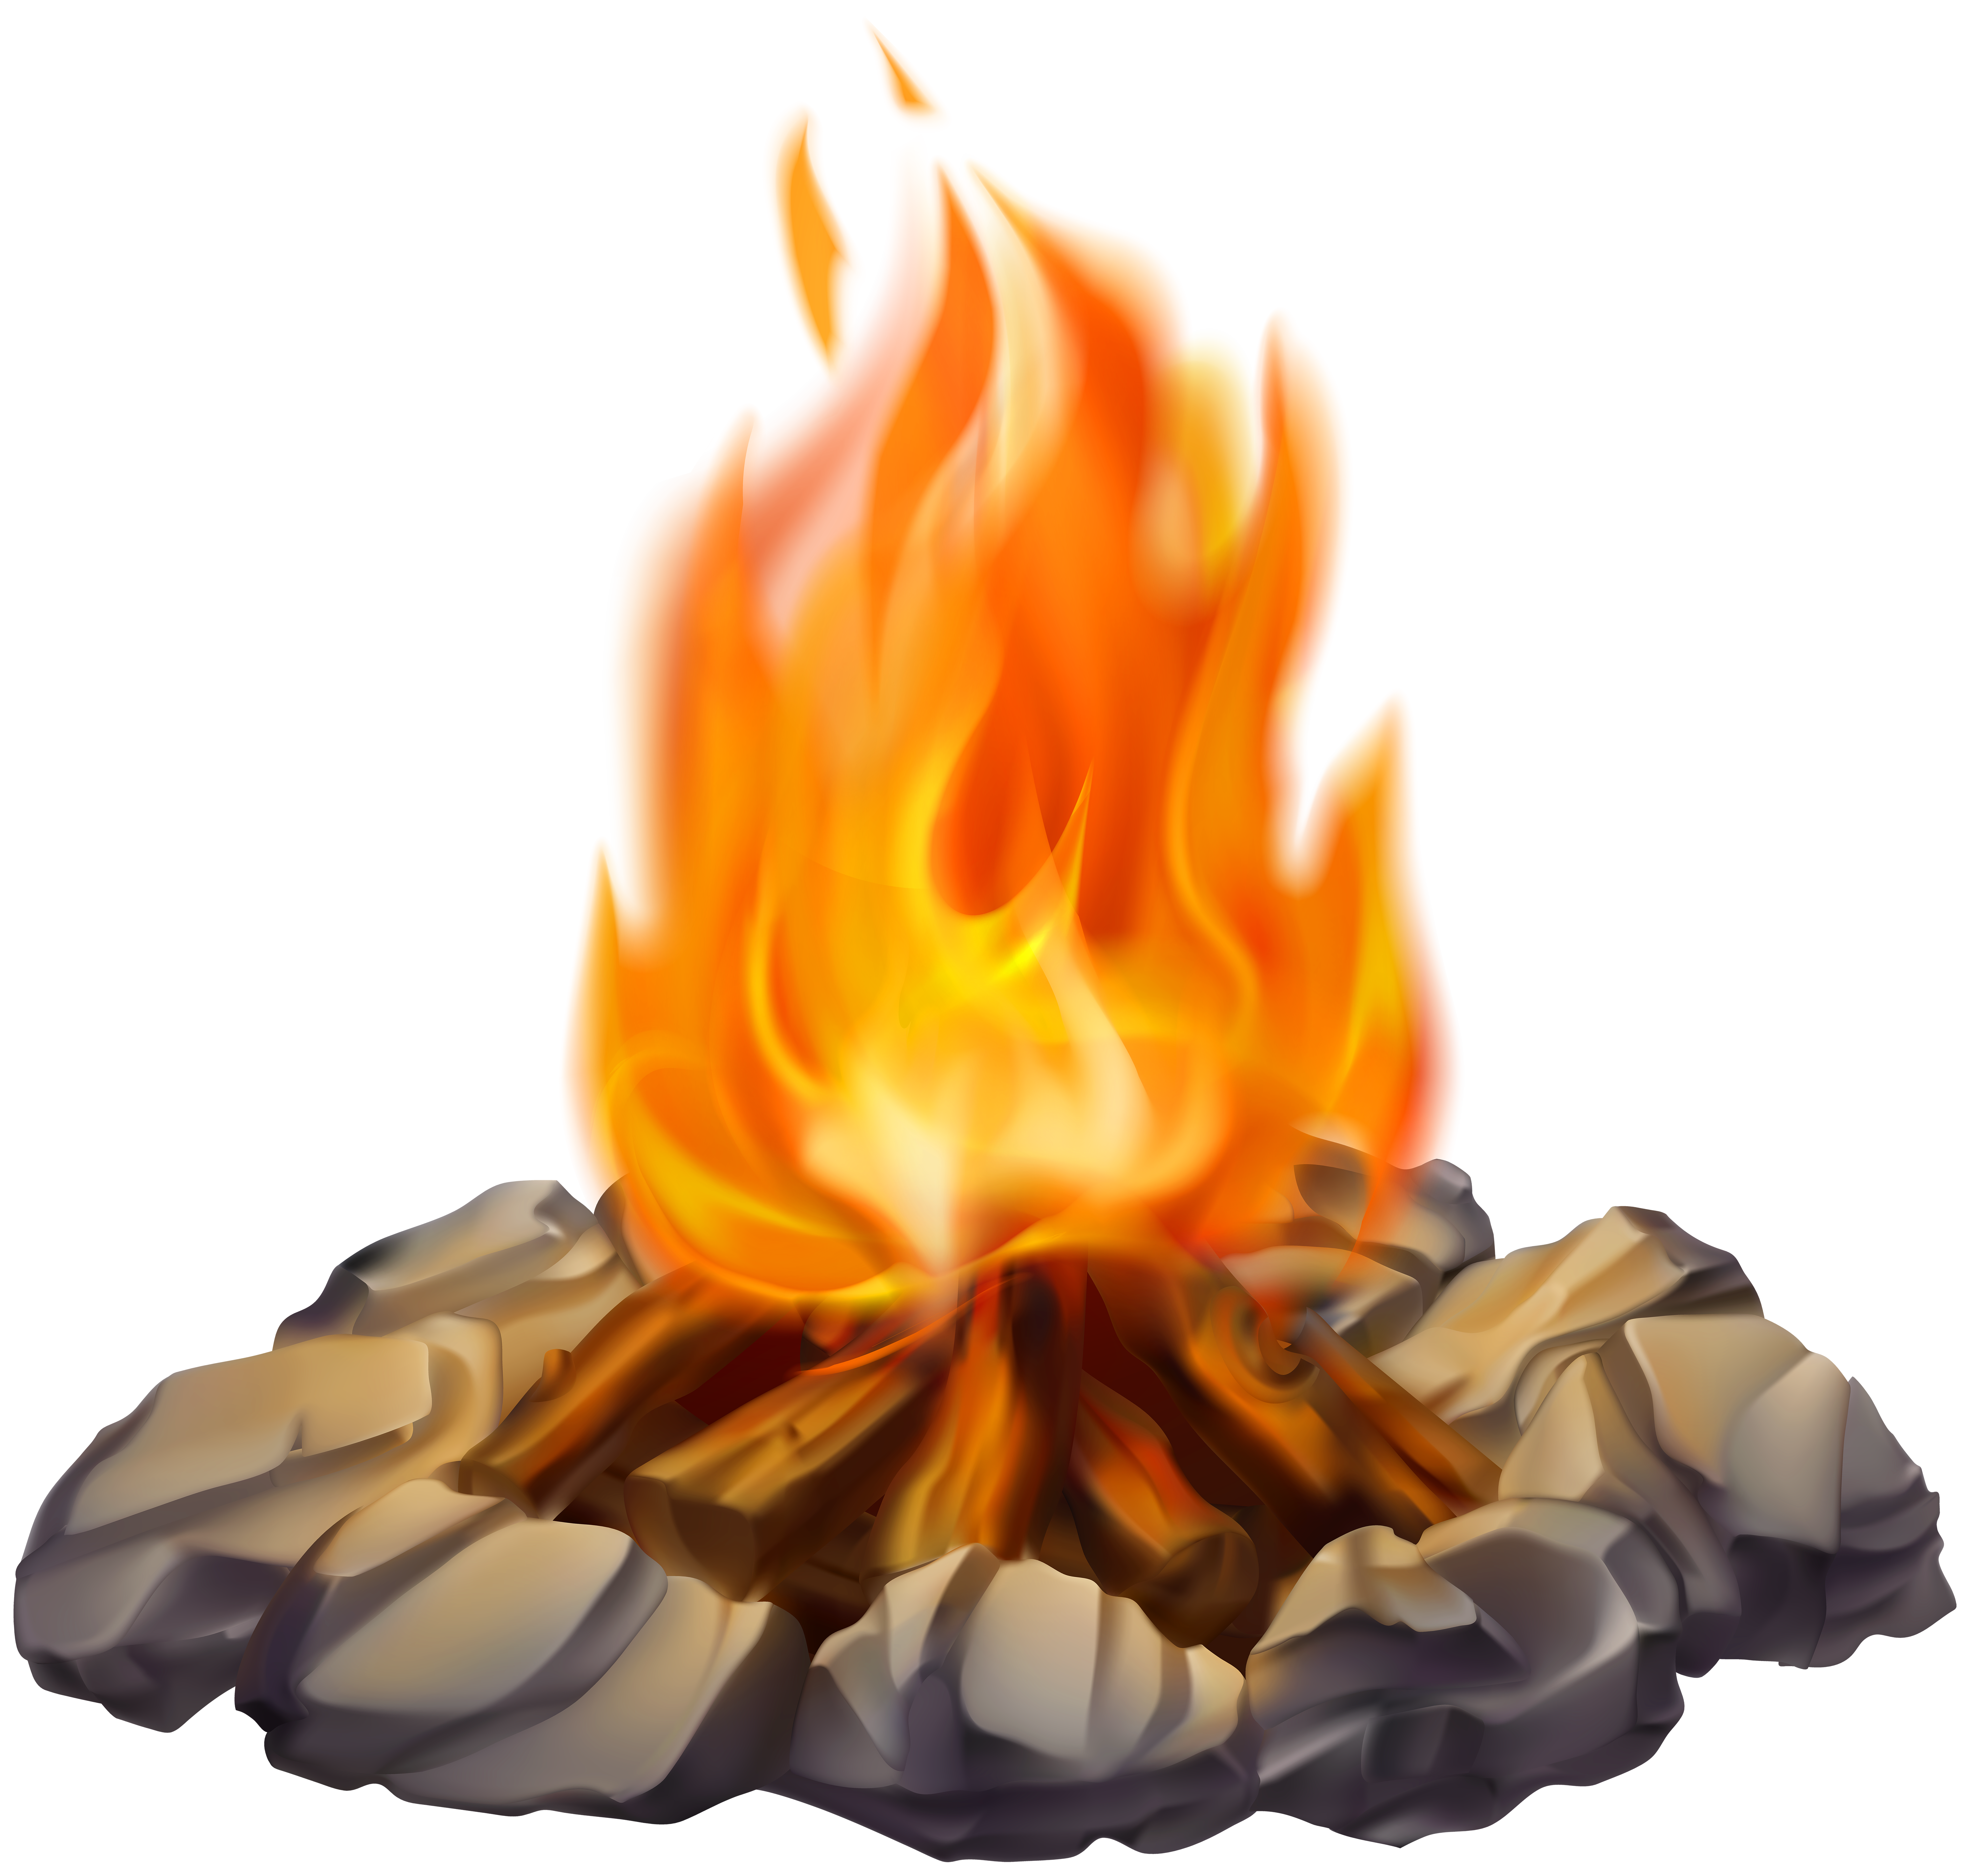 Transparent camp fire clipart svg library Campfire PNG Clip Art Image | Gallery Yopriceville - High-Quality ... svg library